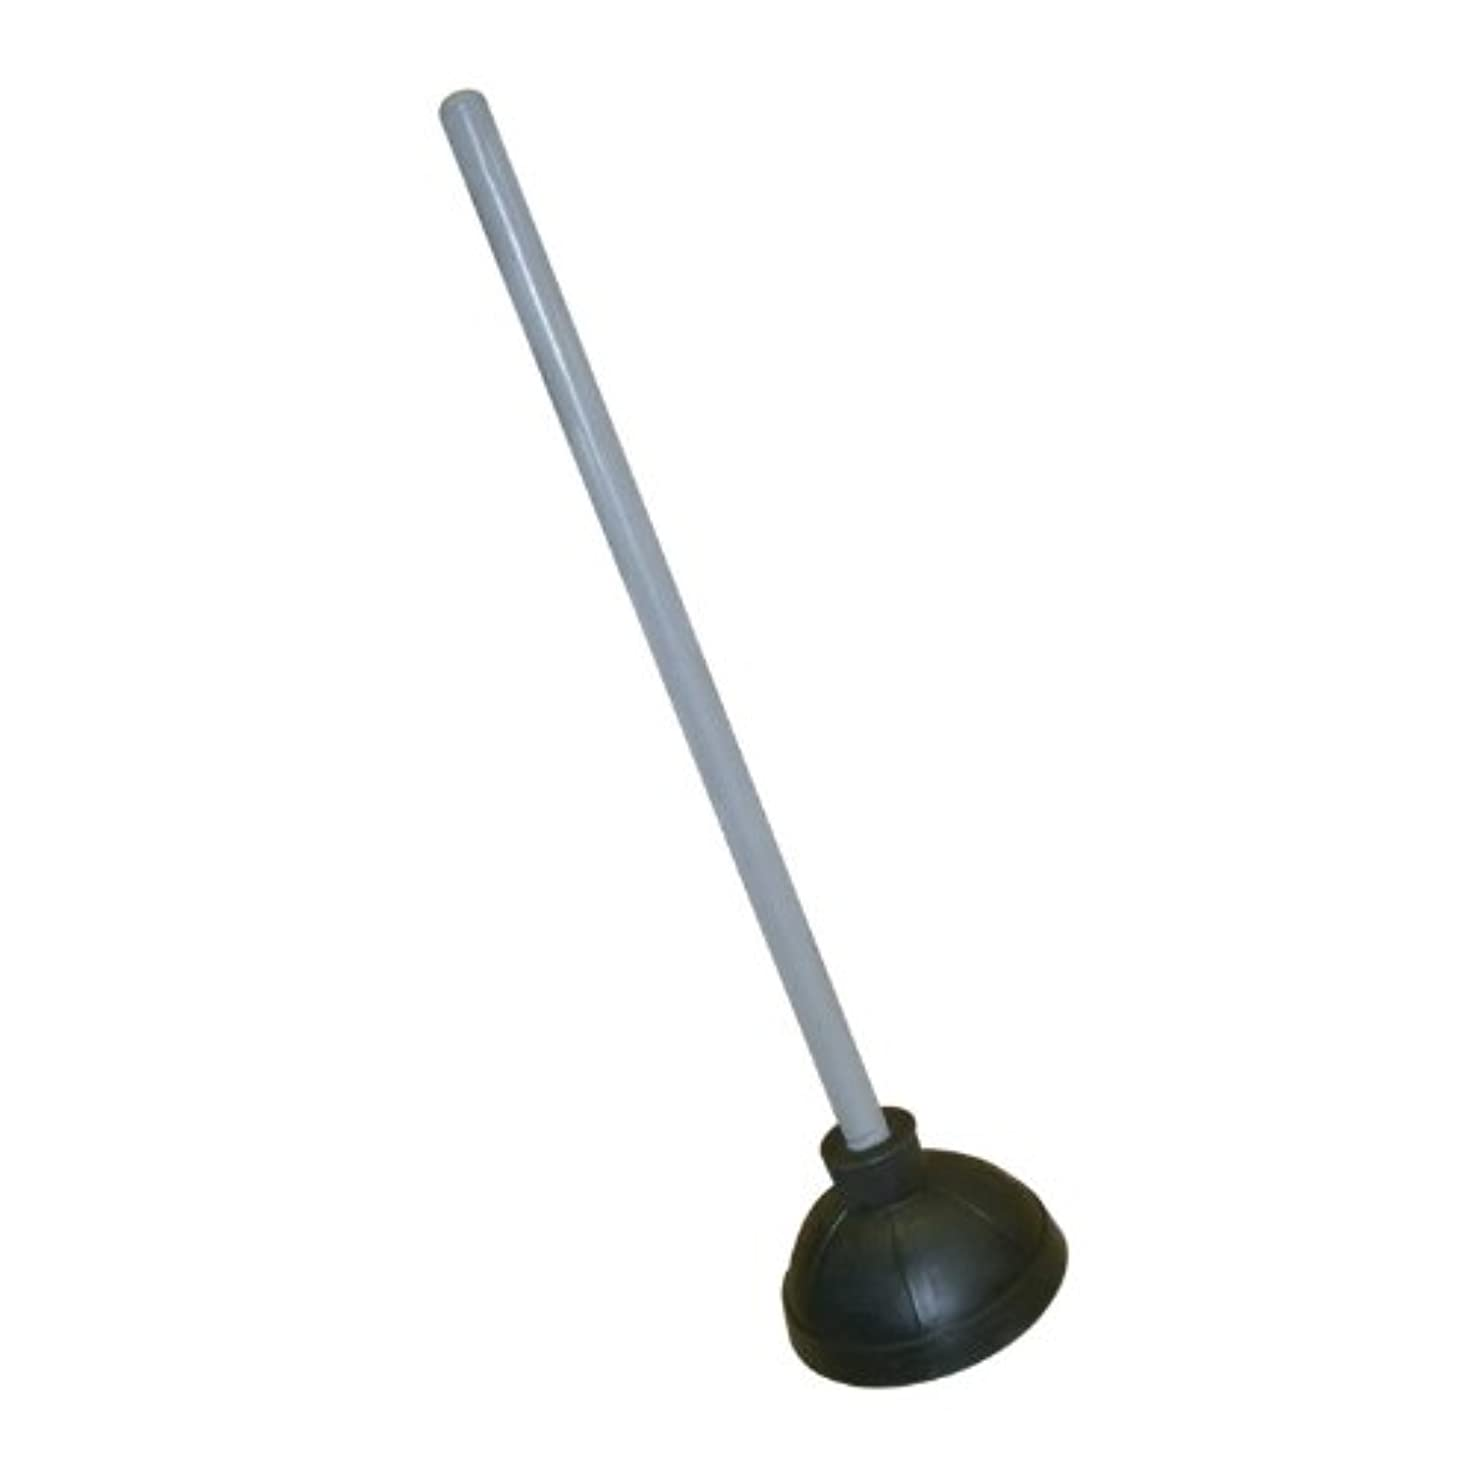 Excellante Plastic Plunger with 21-Inch Long Wooden Handle, Black by Excellant